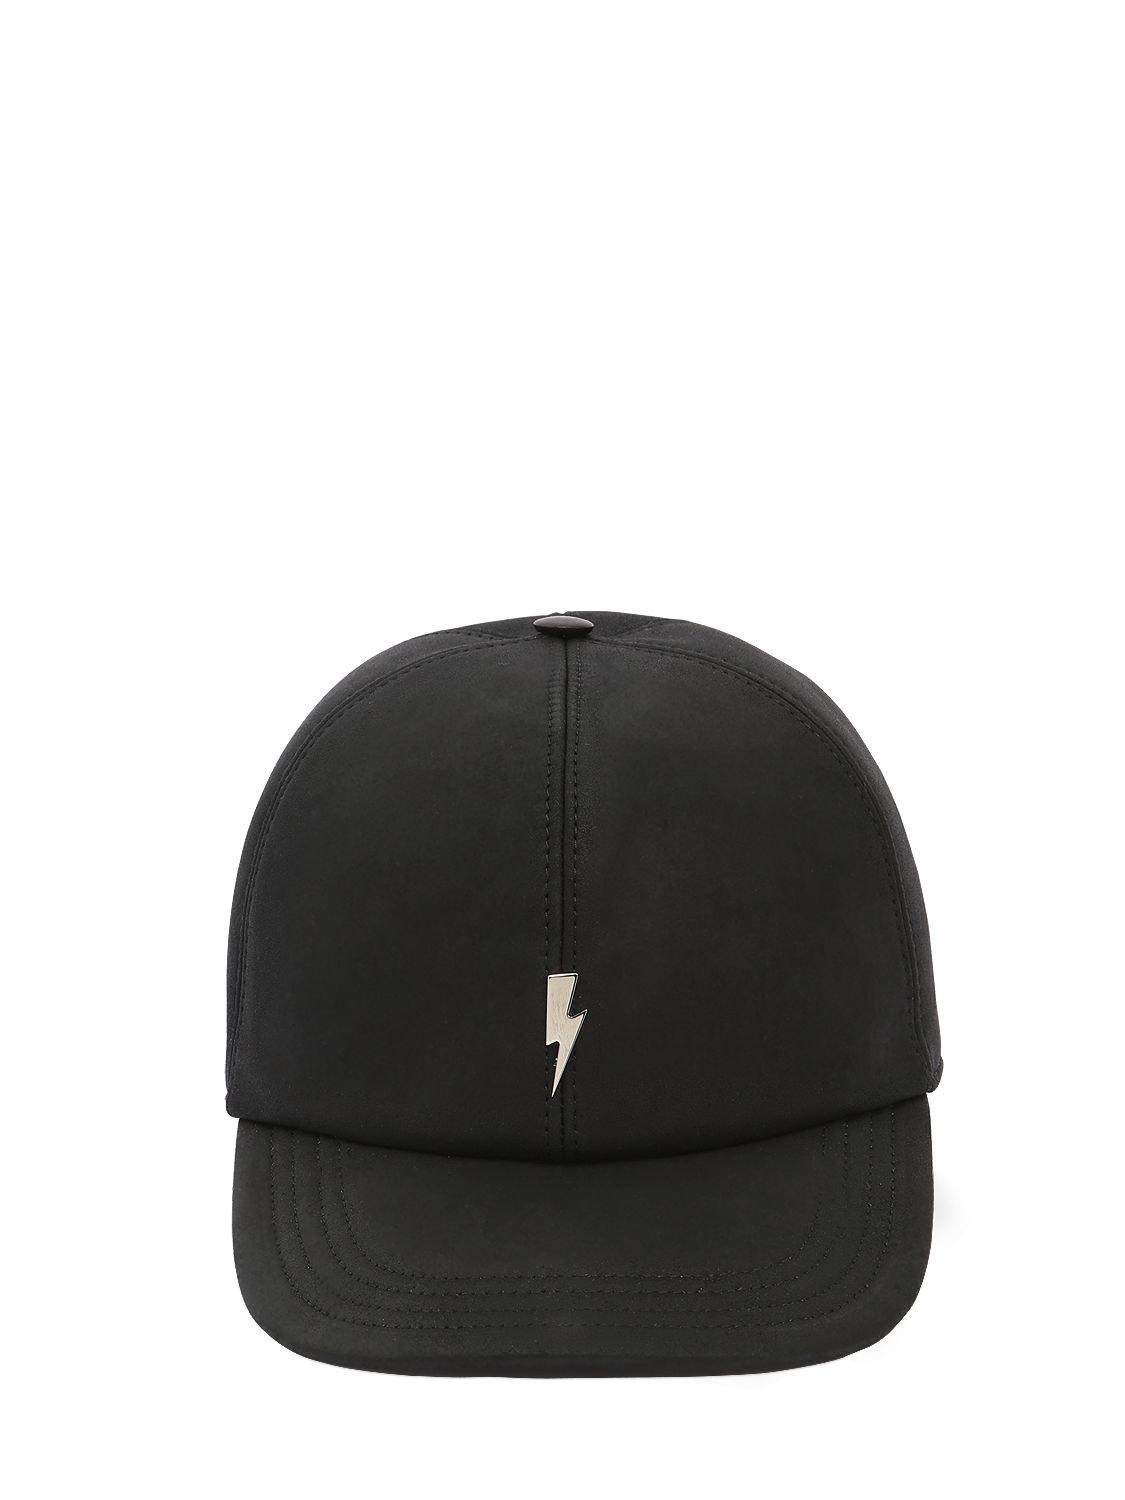 45fe675c594 Neil Barrett Bolt Leather Baseball Hat W  Embroidery in Black for ...